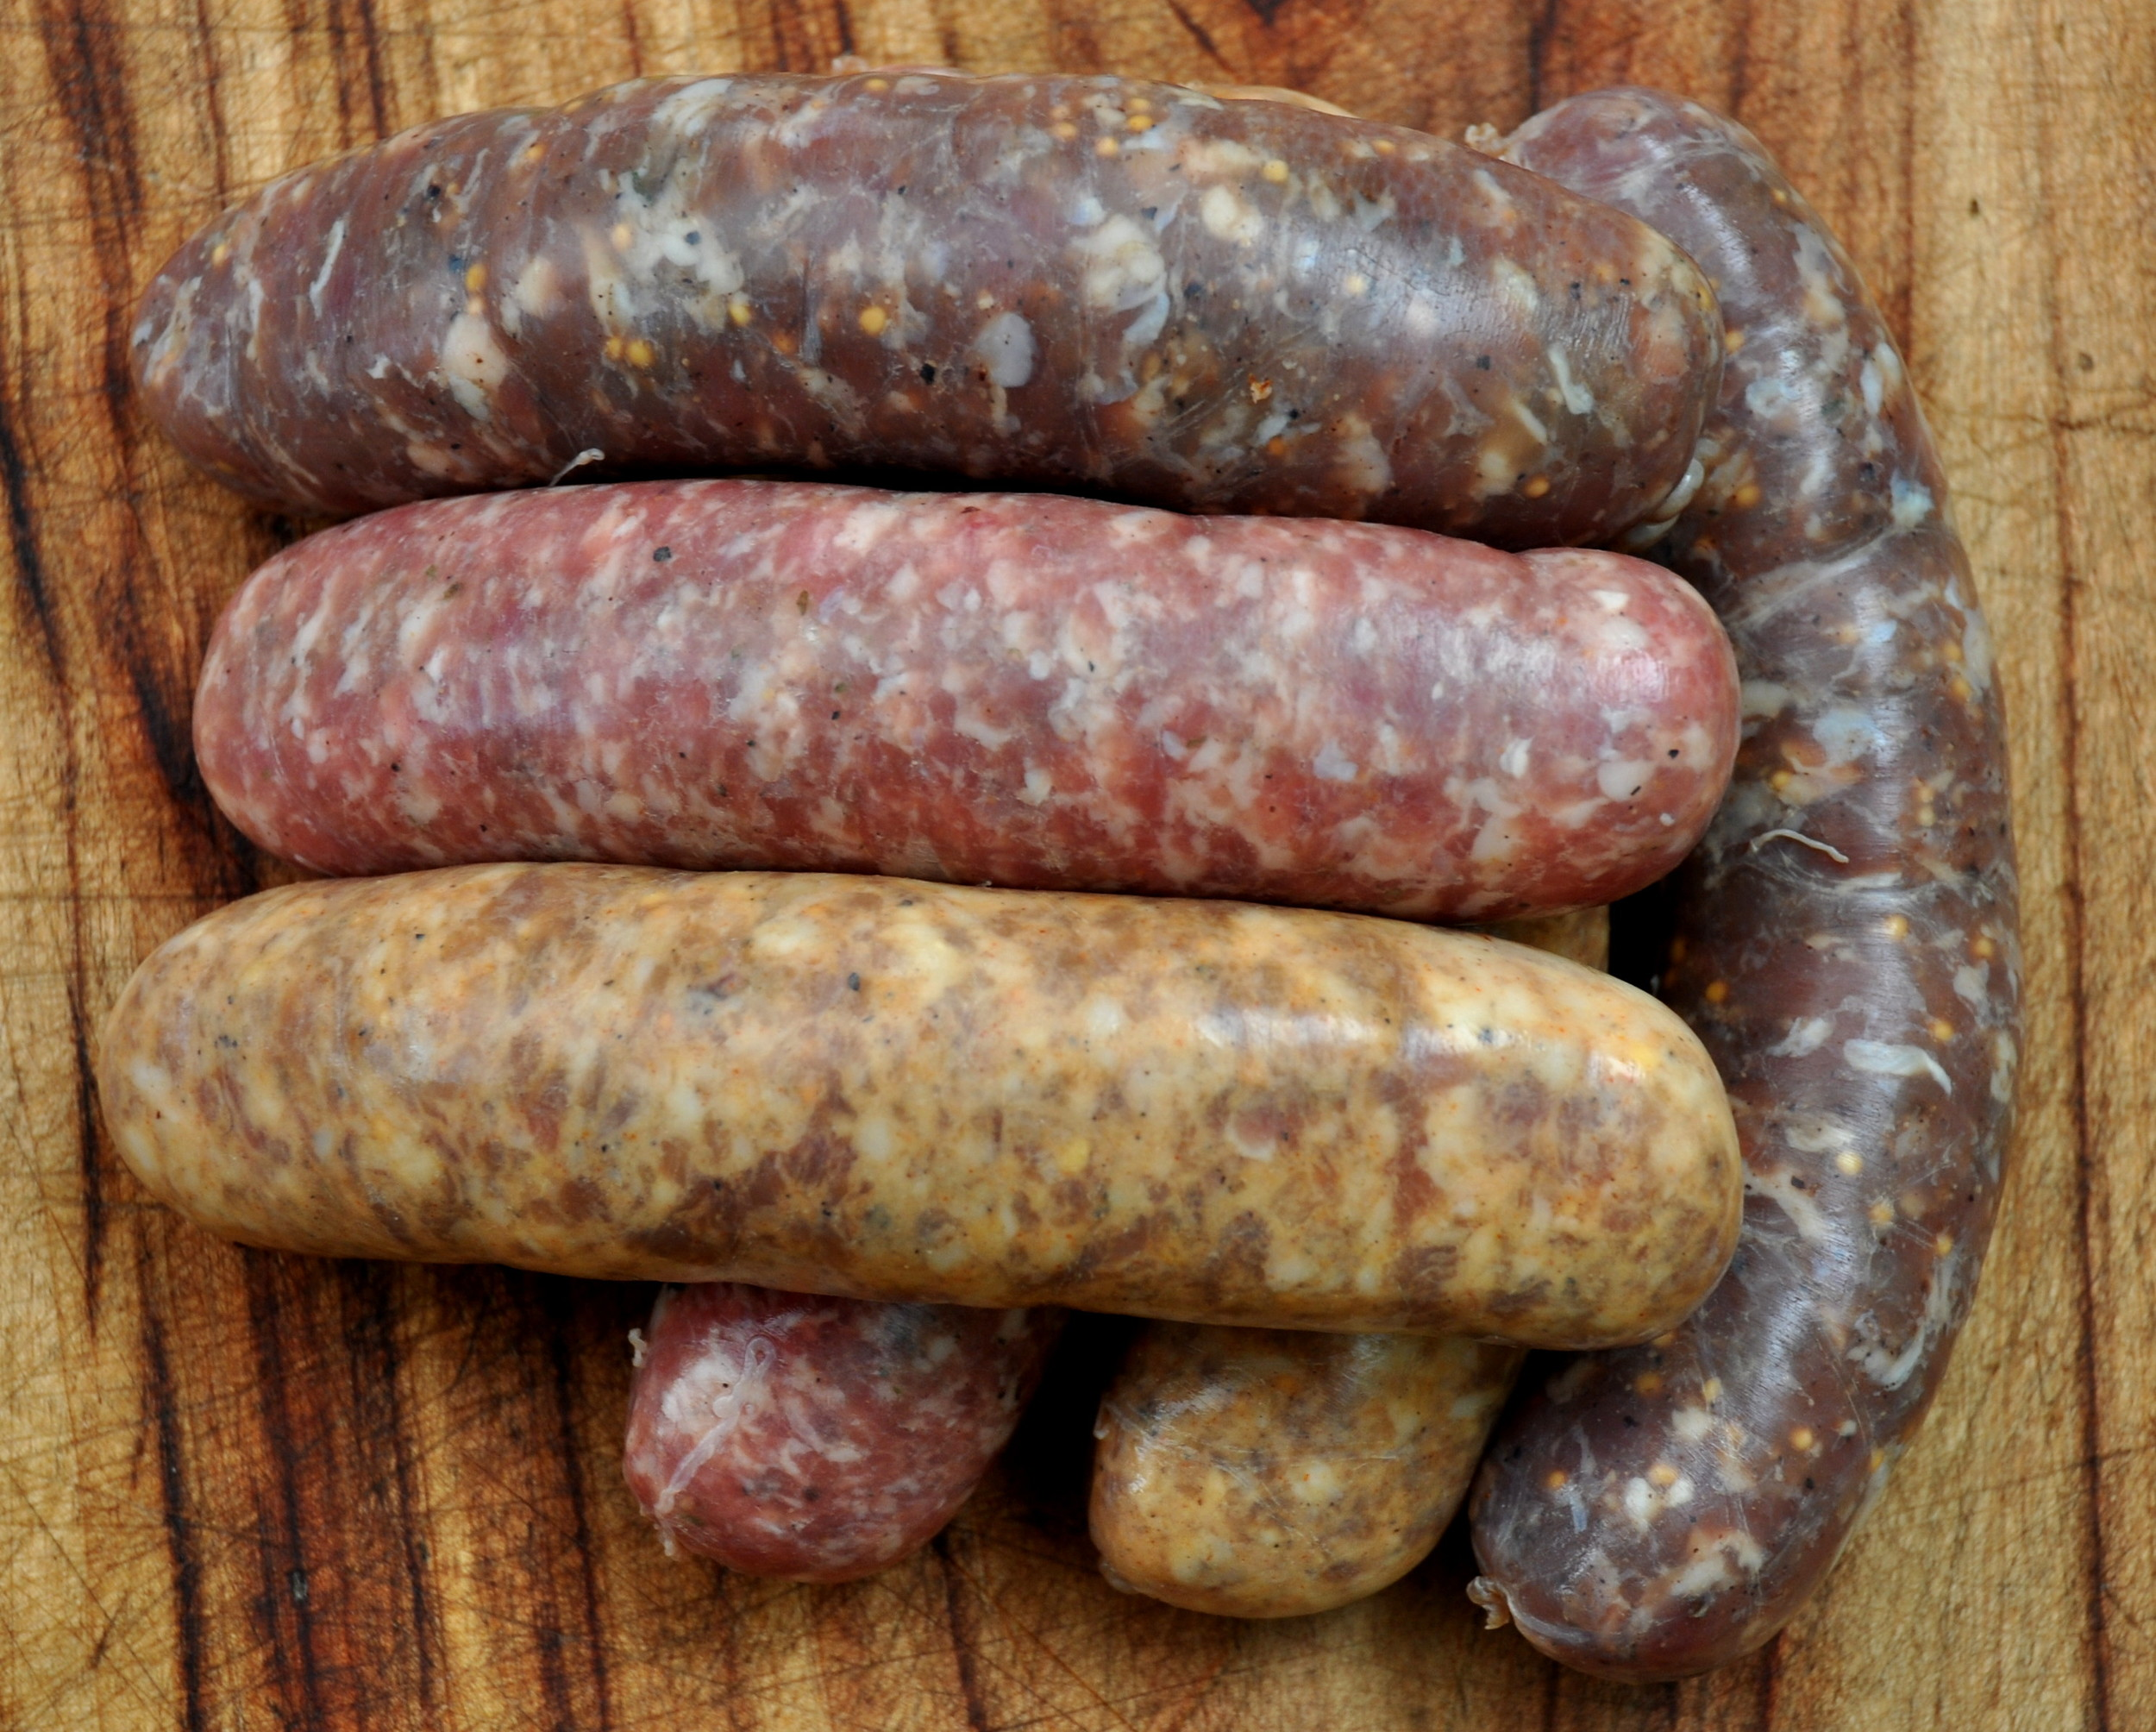 Fresh sausages from Sea Breeze Farmat Ballard Farmers Market. Copyright Zachary D. Lyons.